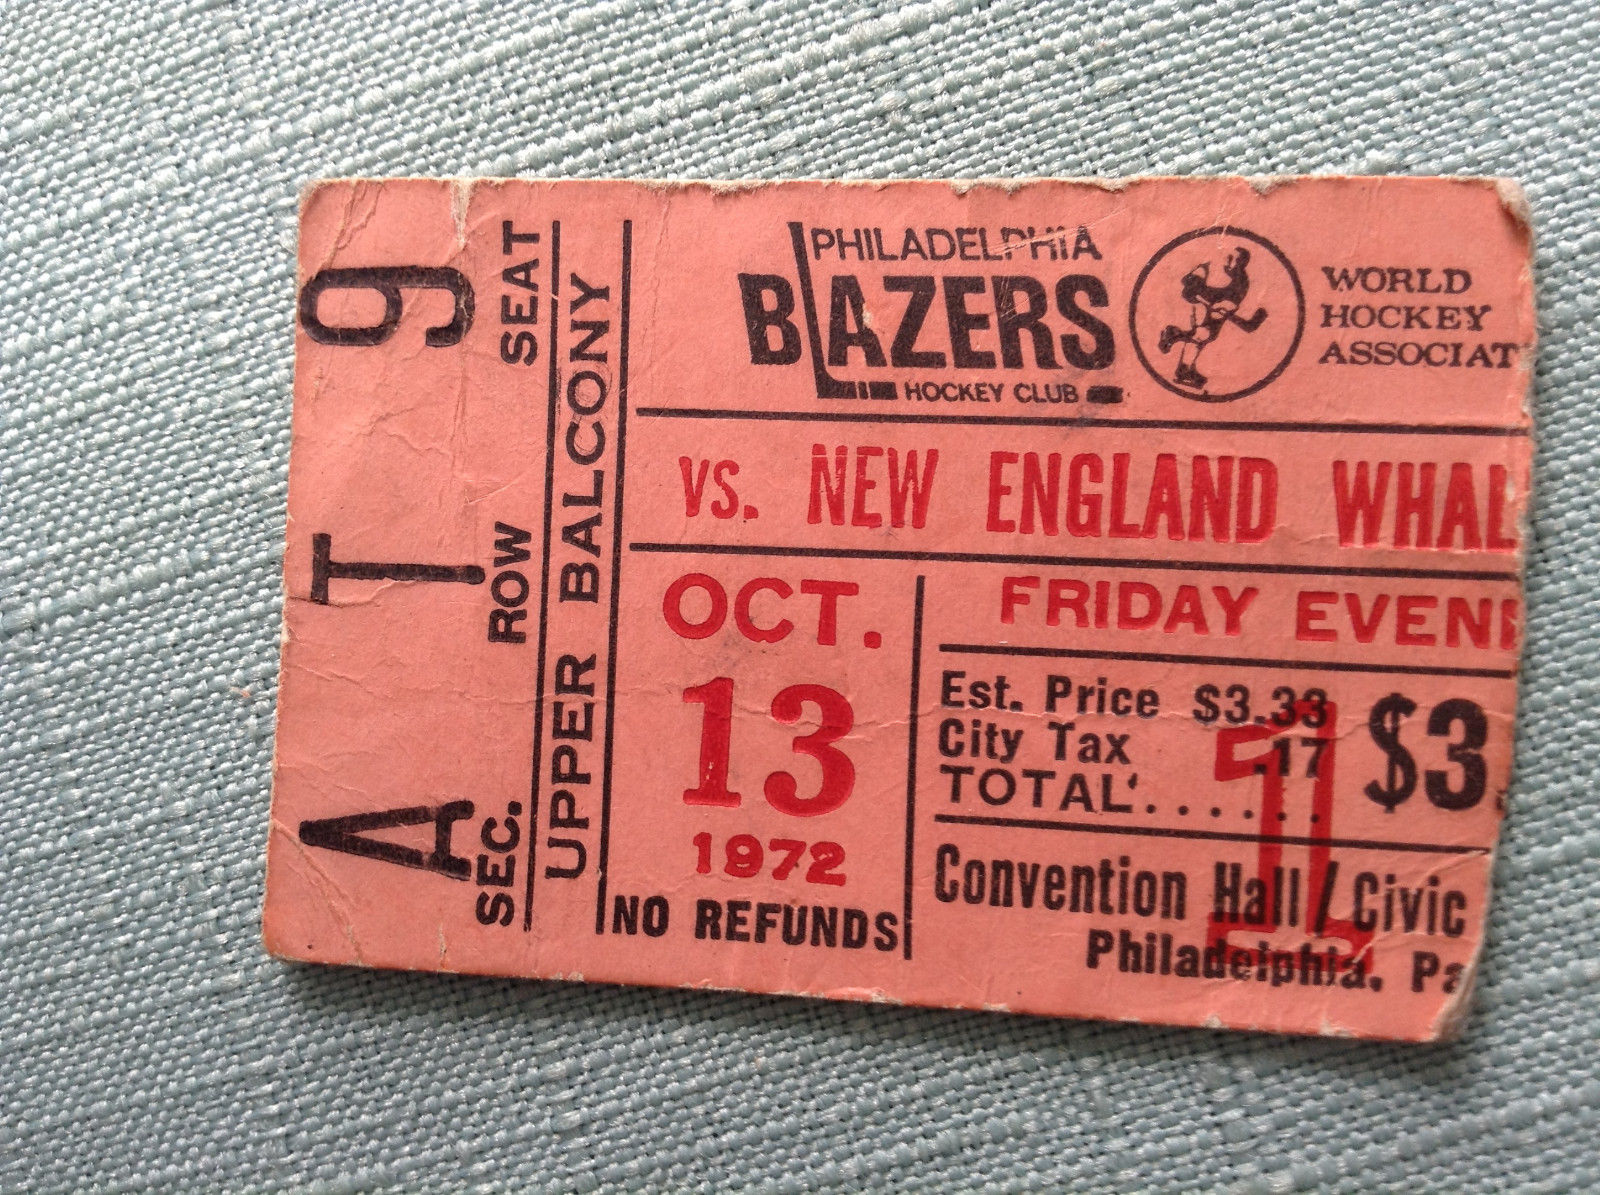 1972 WHA Whalers at Blazers ticket stub